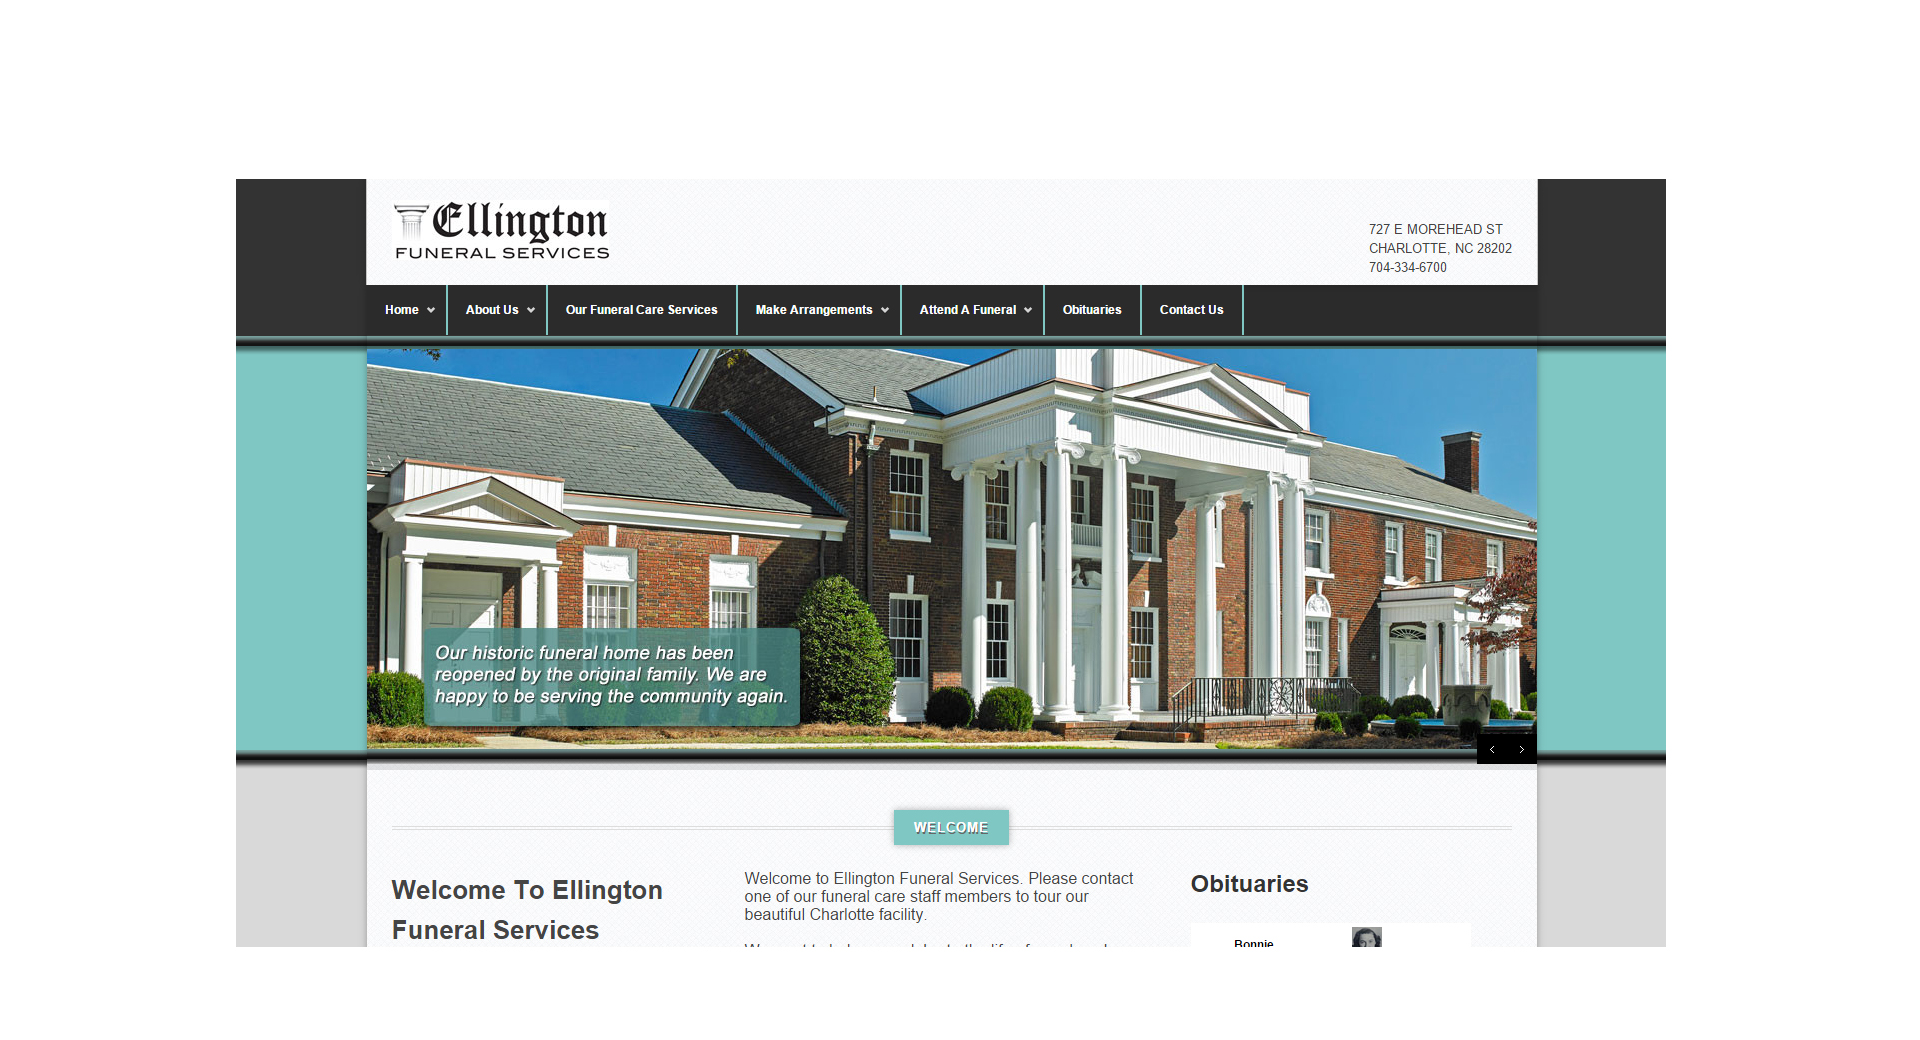 ellington funeral services funeral home website design copy writing seo. Black Bedroom Furniture Sets. Home Design Ideas